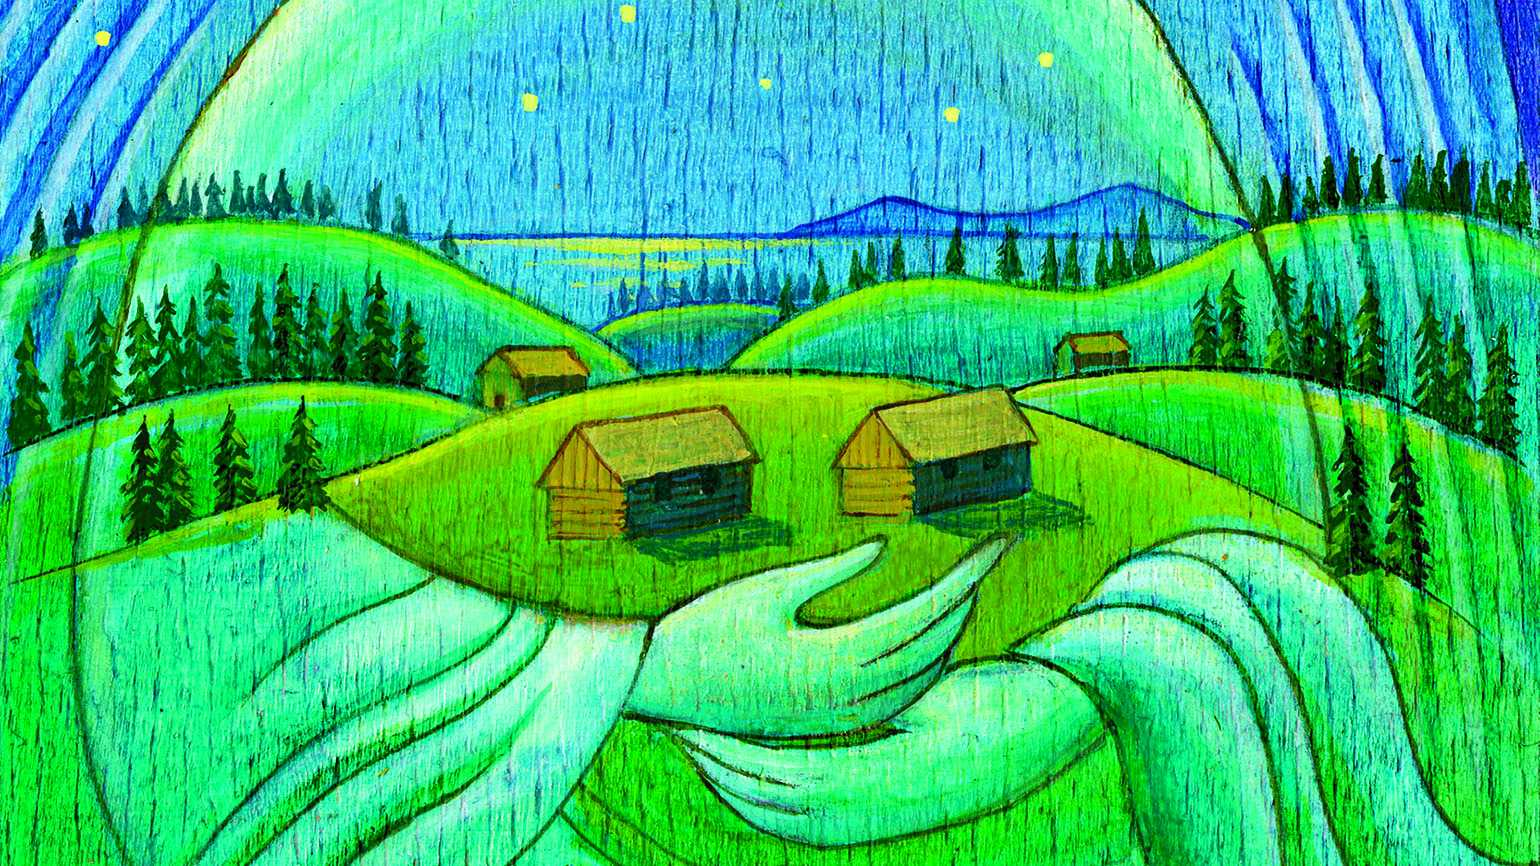 Illustrations of cabins held by an angel